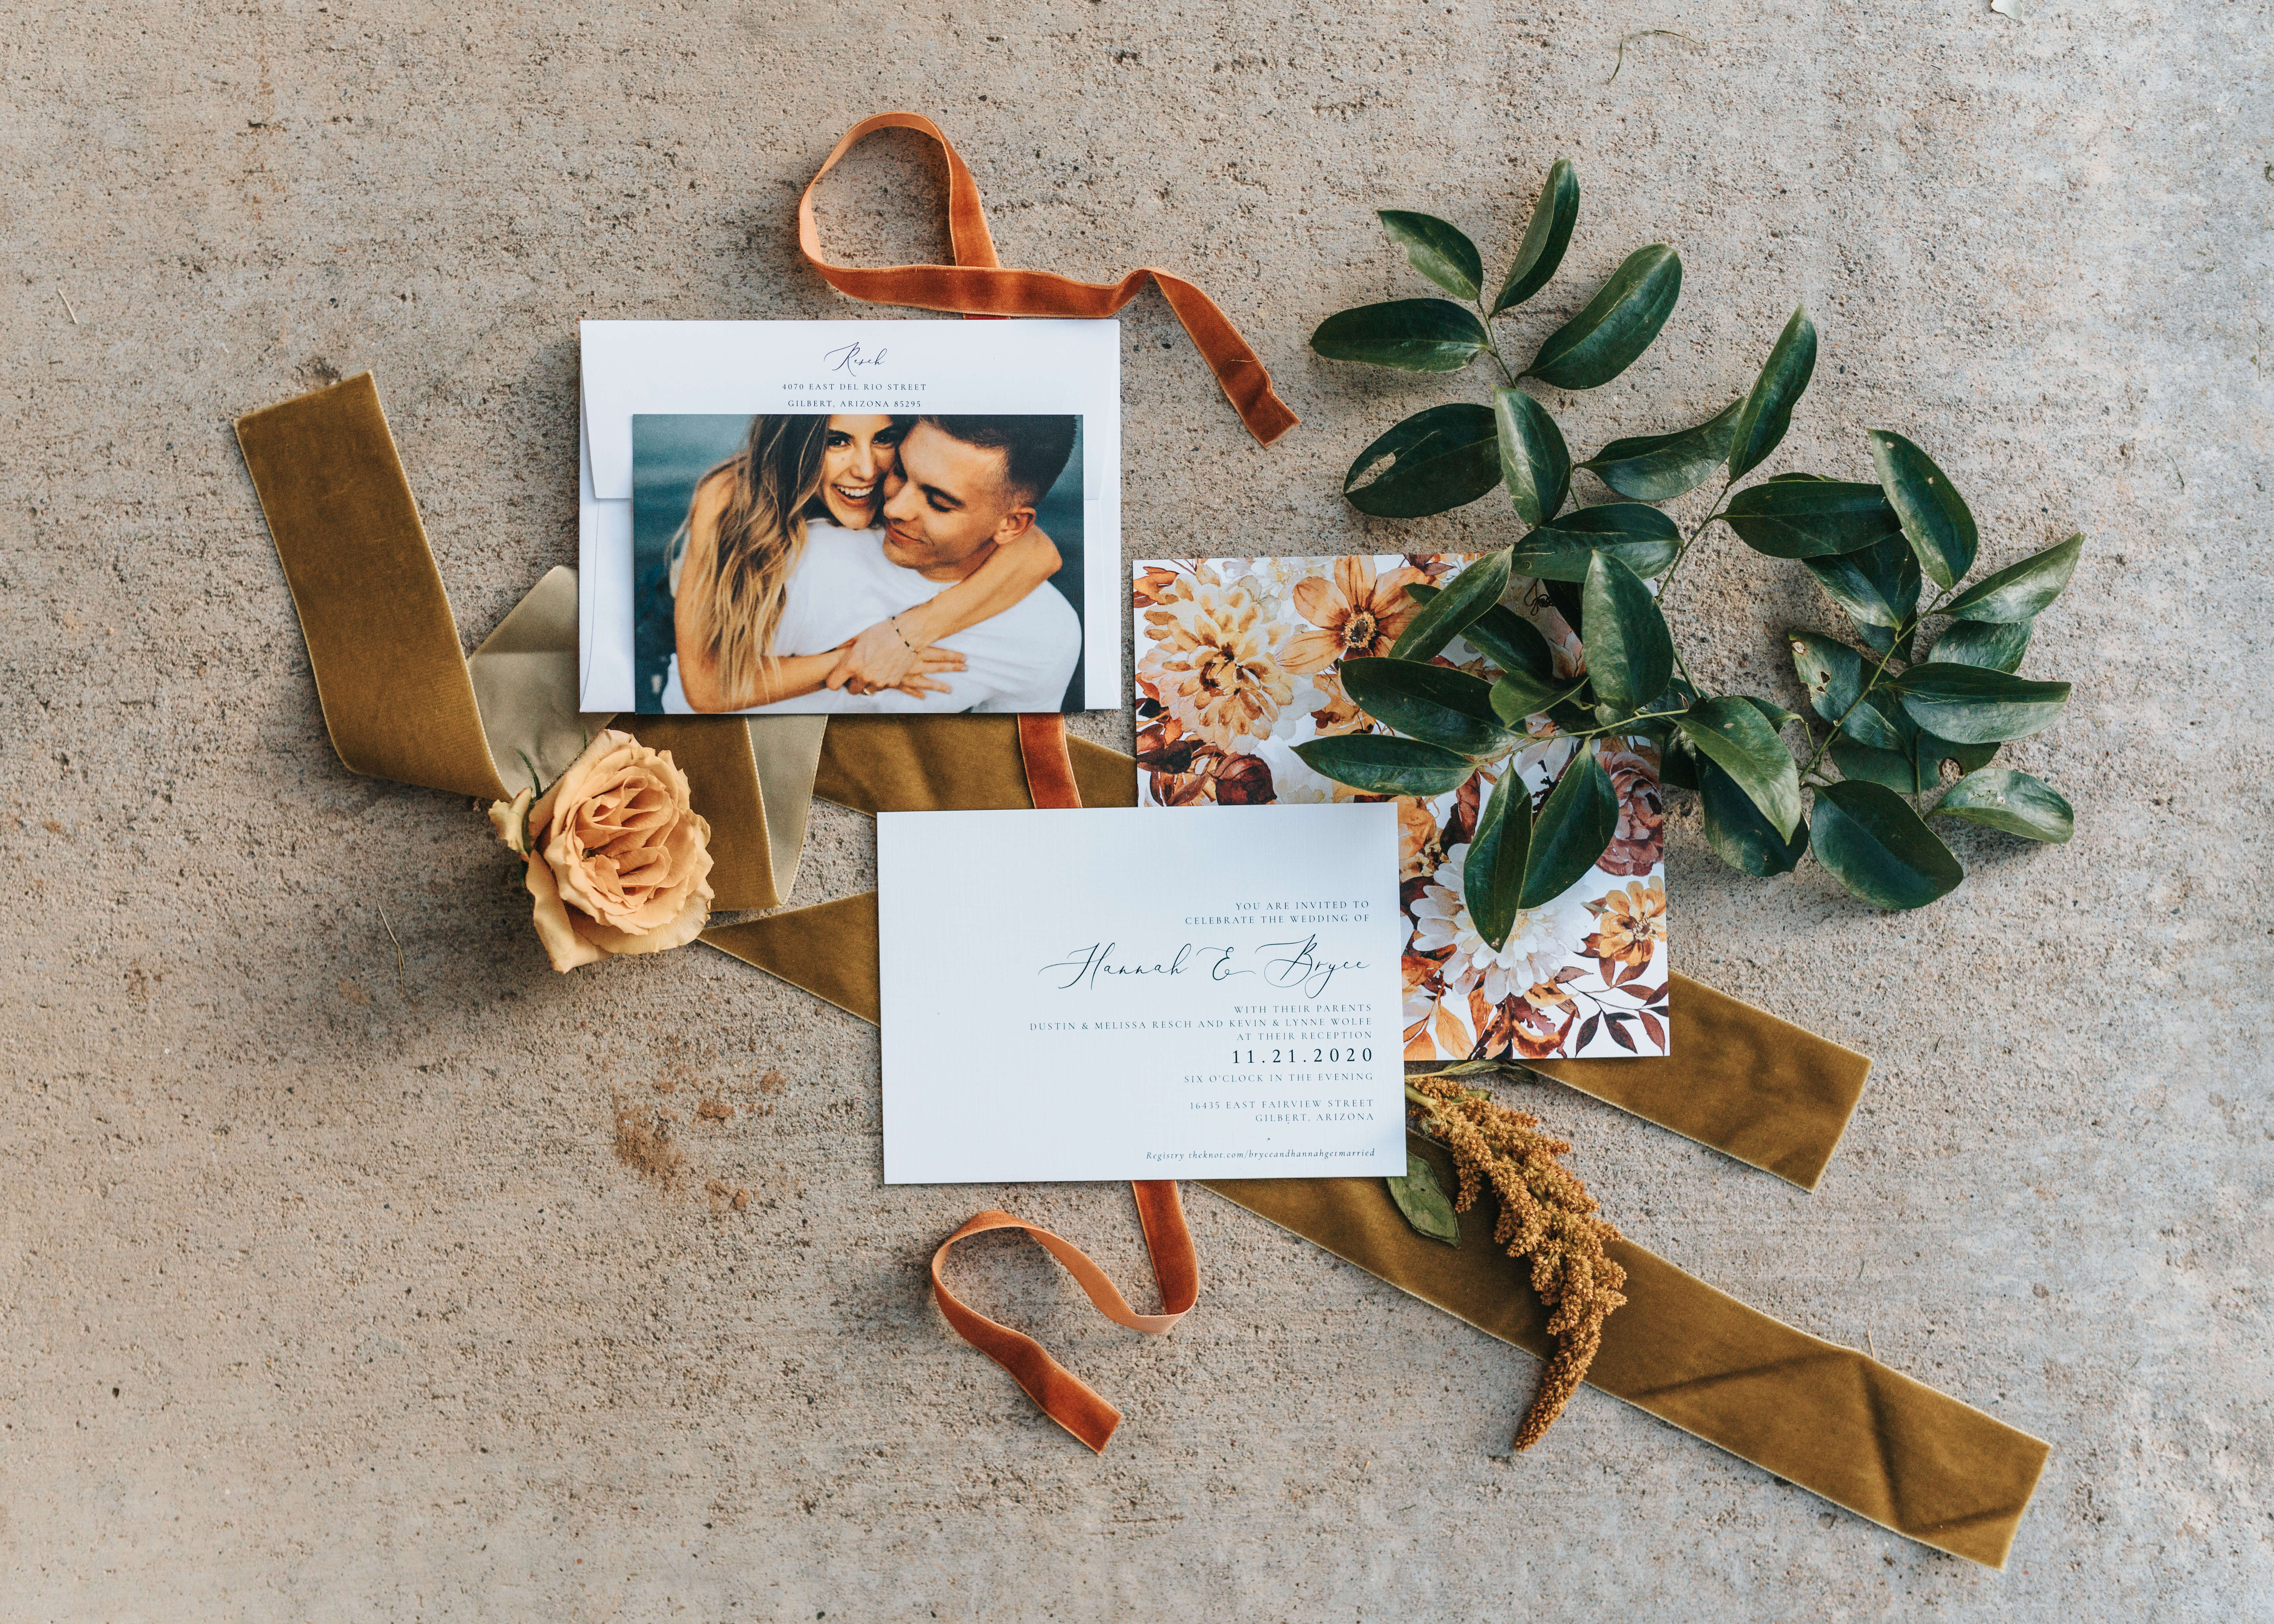 flat lay invite photo inspiration styled with ribbon